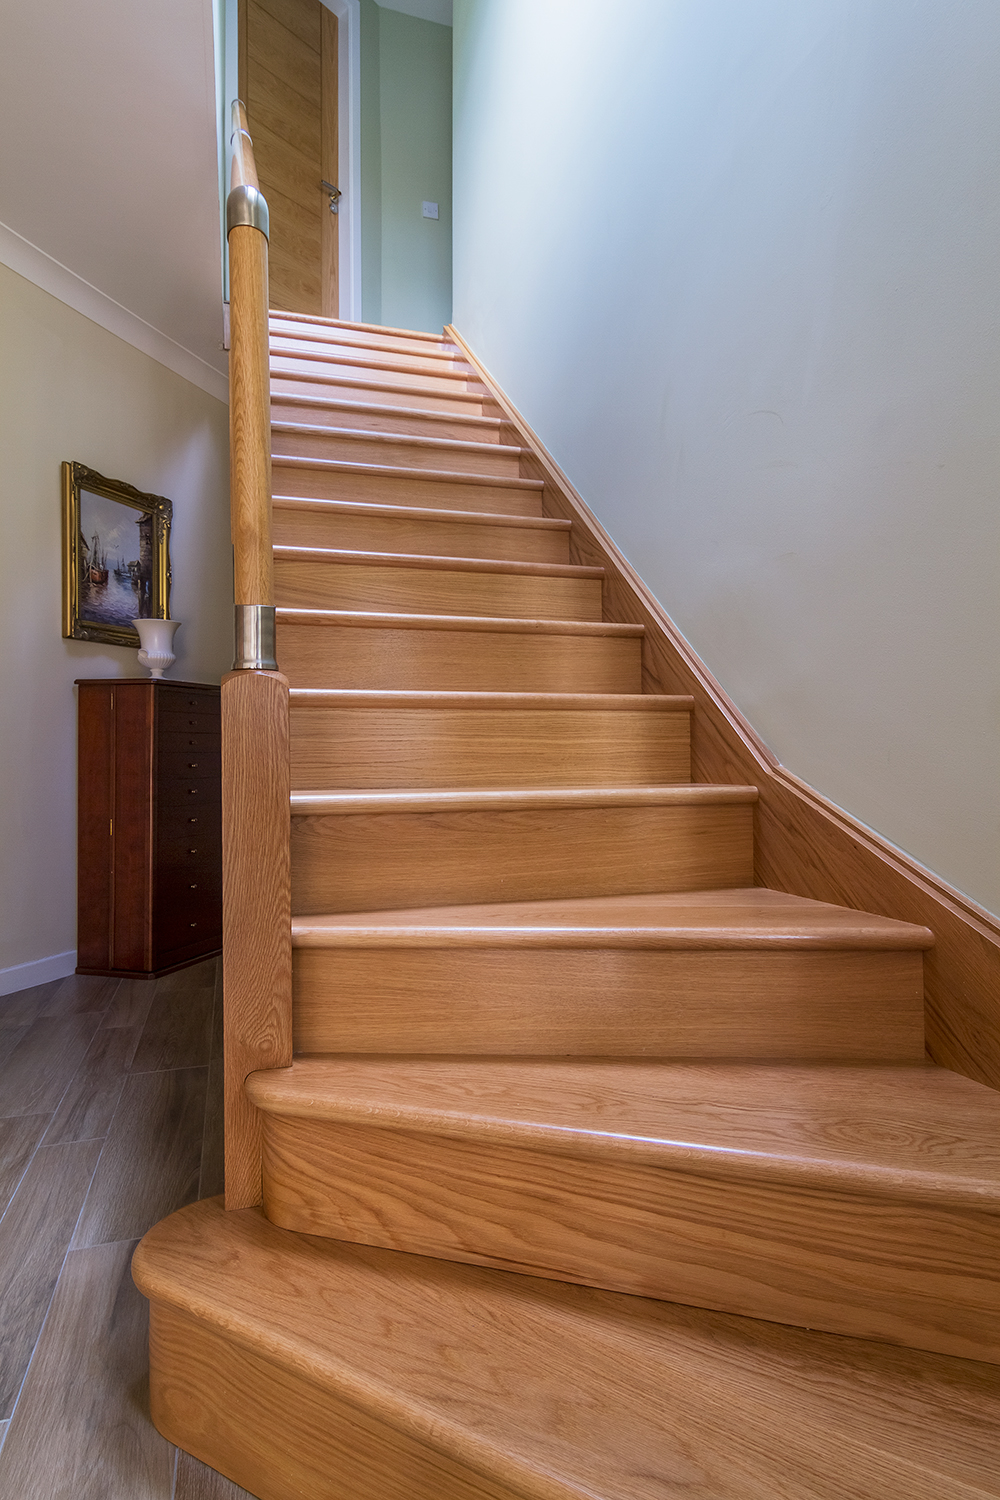 www.stockwell-ltd.co.uk   3 kite bottom winder oak staircase with feature kite bullnose steps, Richard Burbidge Fusion newels, brushed nickel Fusion stair components and with Richard Burbidge Fusion glass panels.